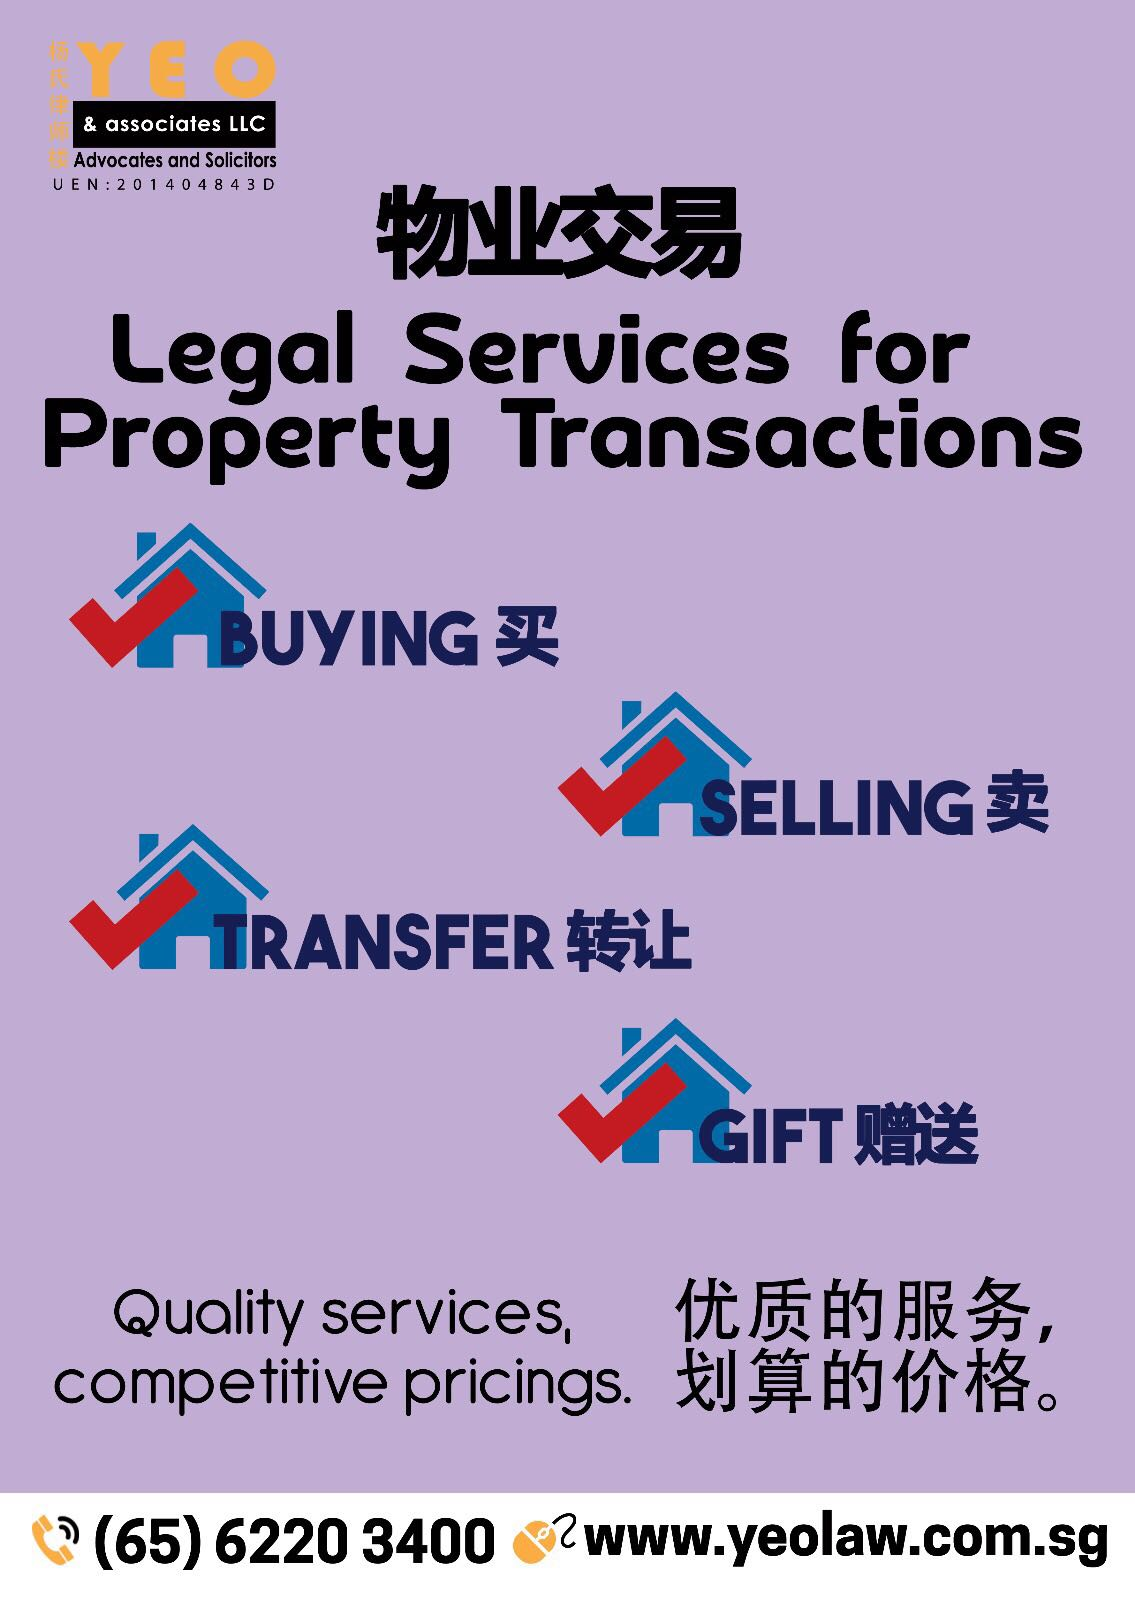 YEO & Associates LLC Pte Ltd.